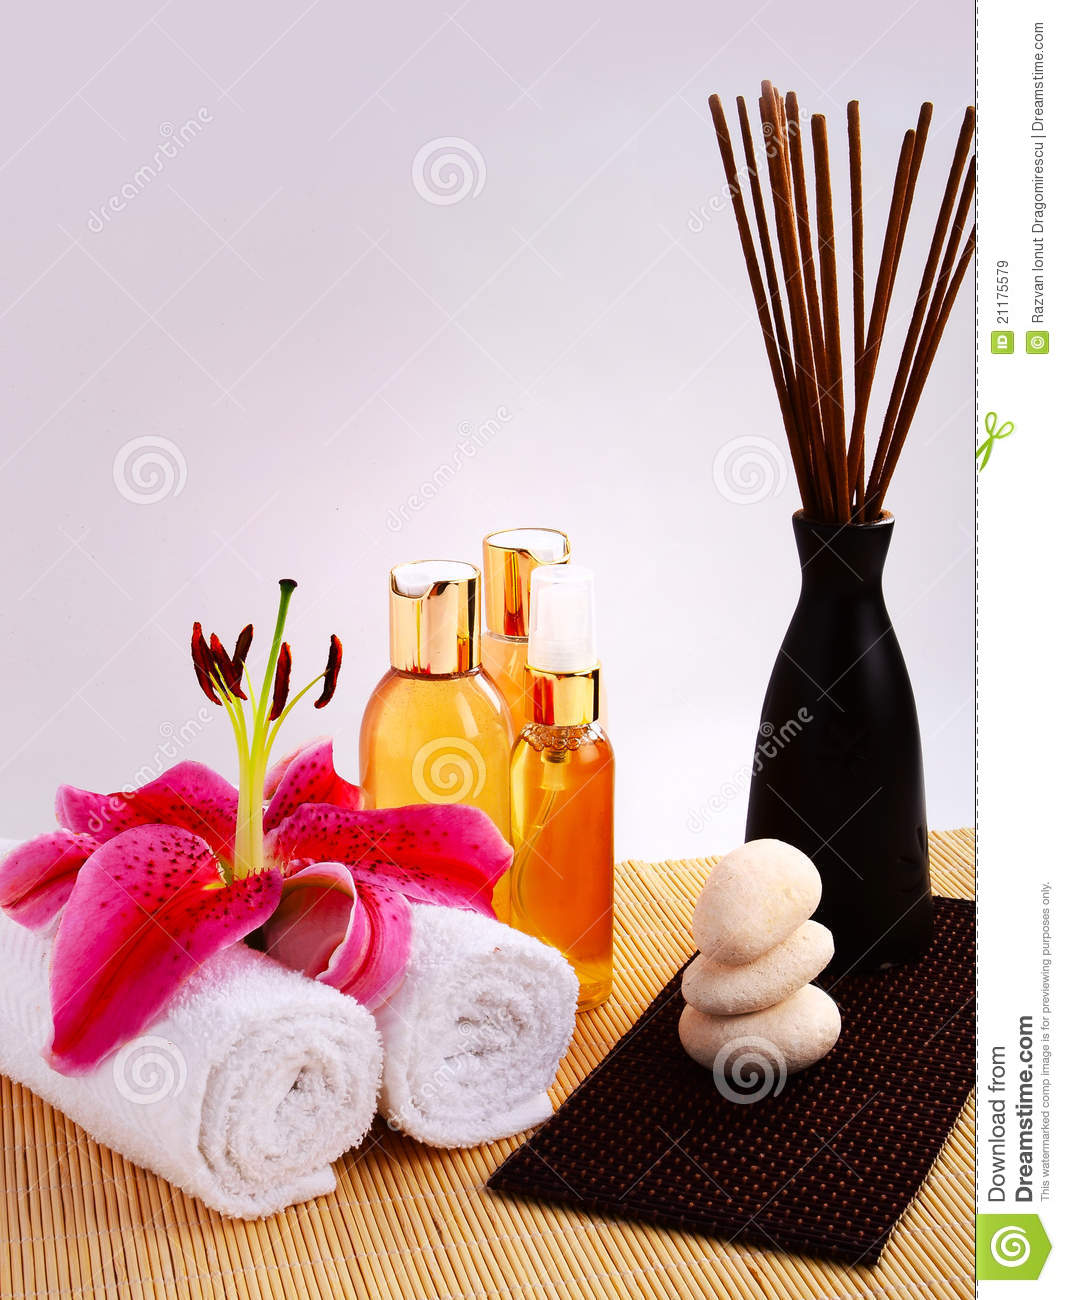 Spa Oils and Incense Sticks